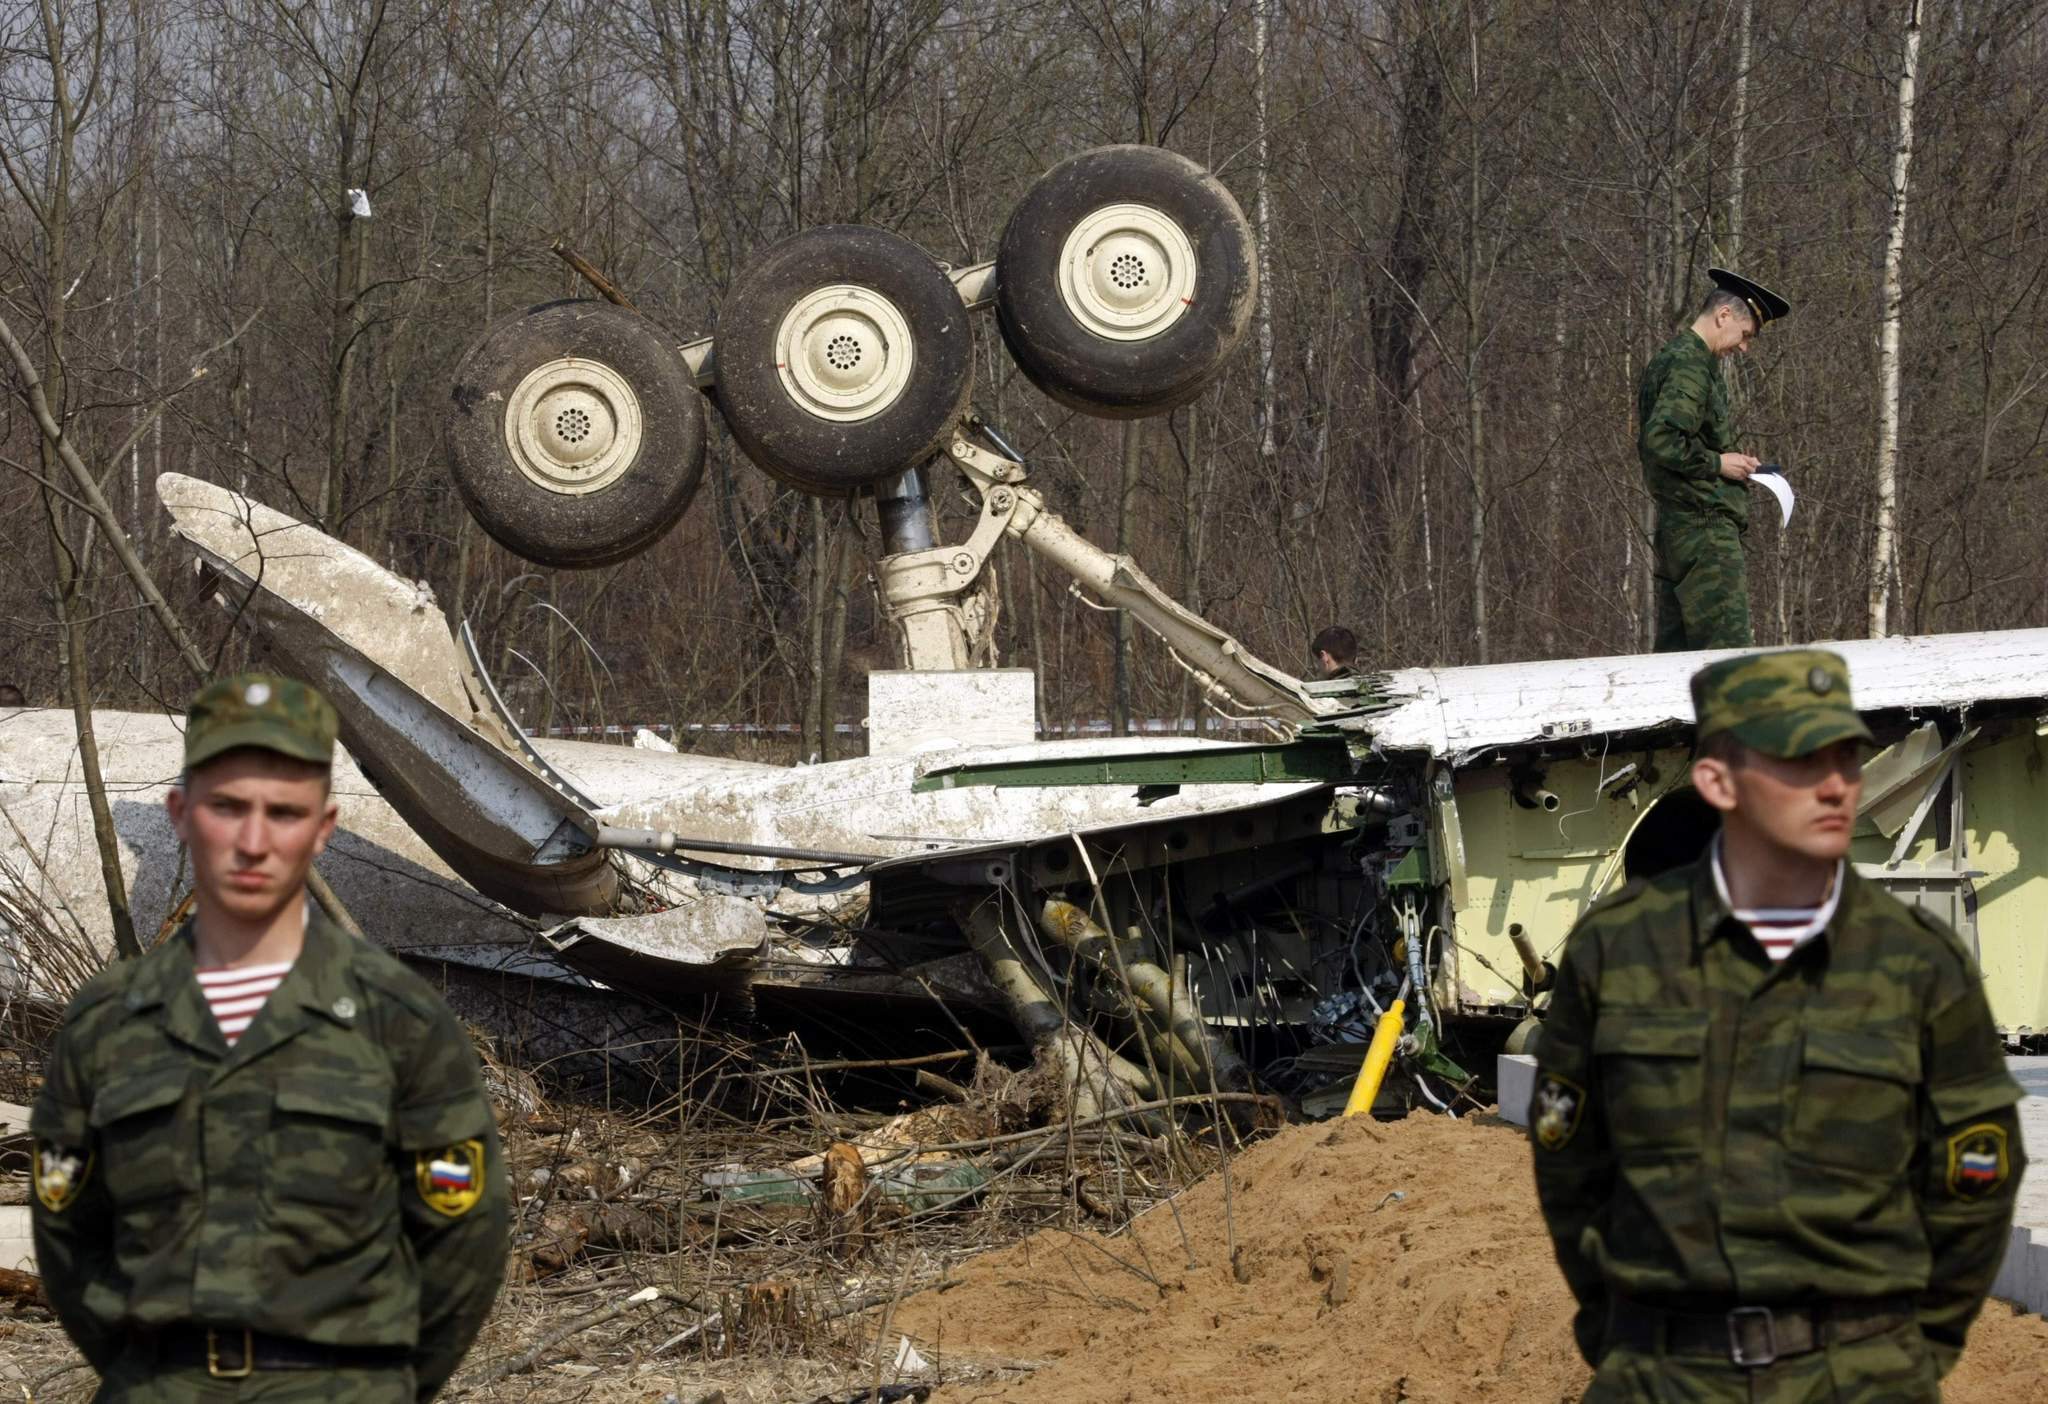 russian-soldiers-at-crashjpg-069d011274c